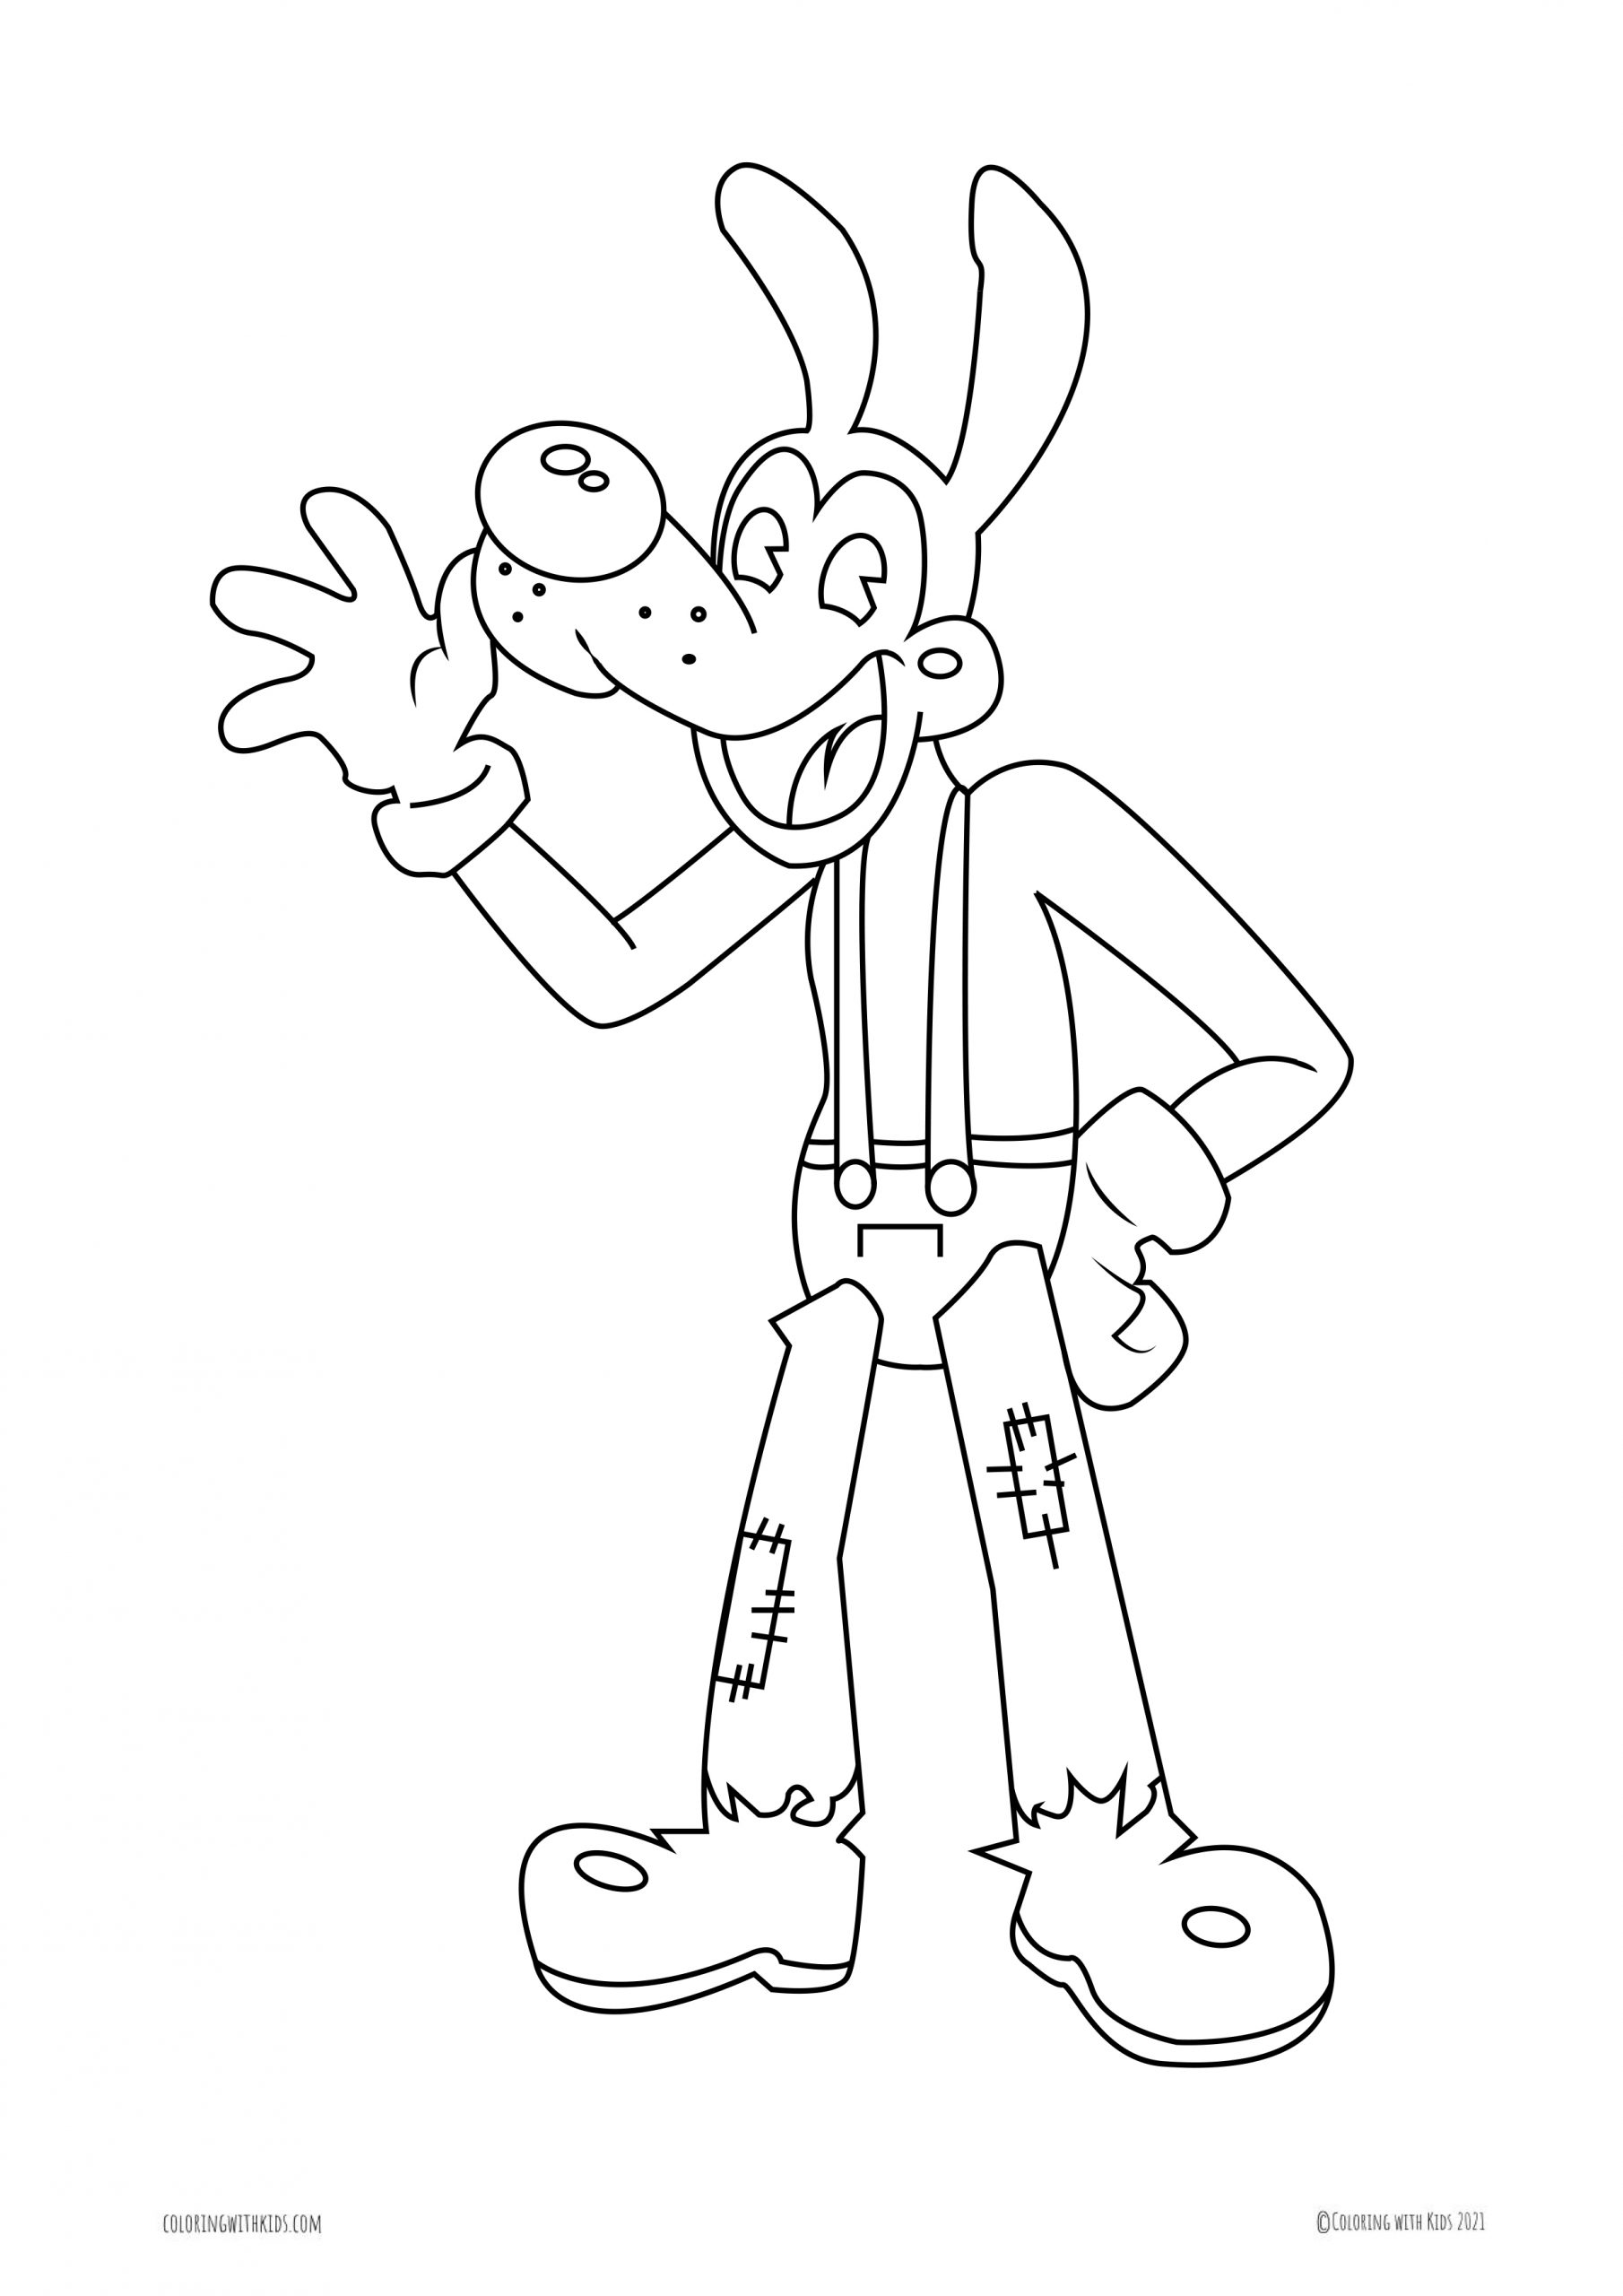 Coloring Page Of Boris The Wolf   Coloring with Kids